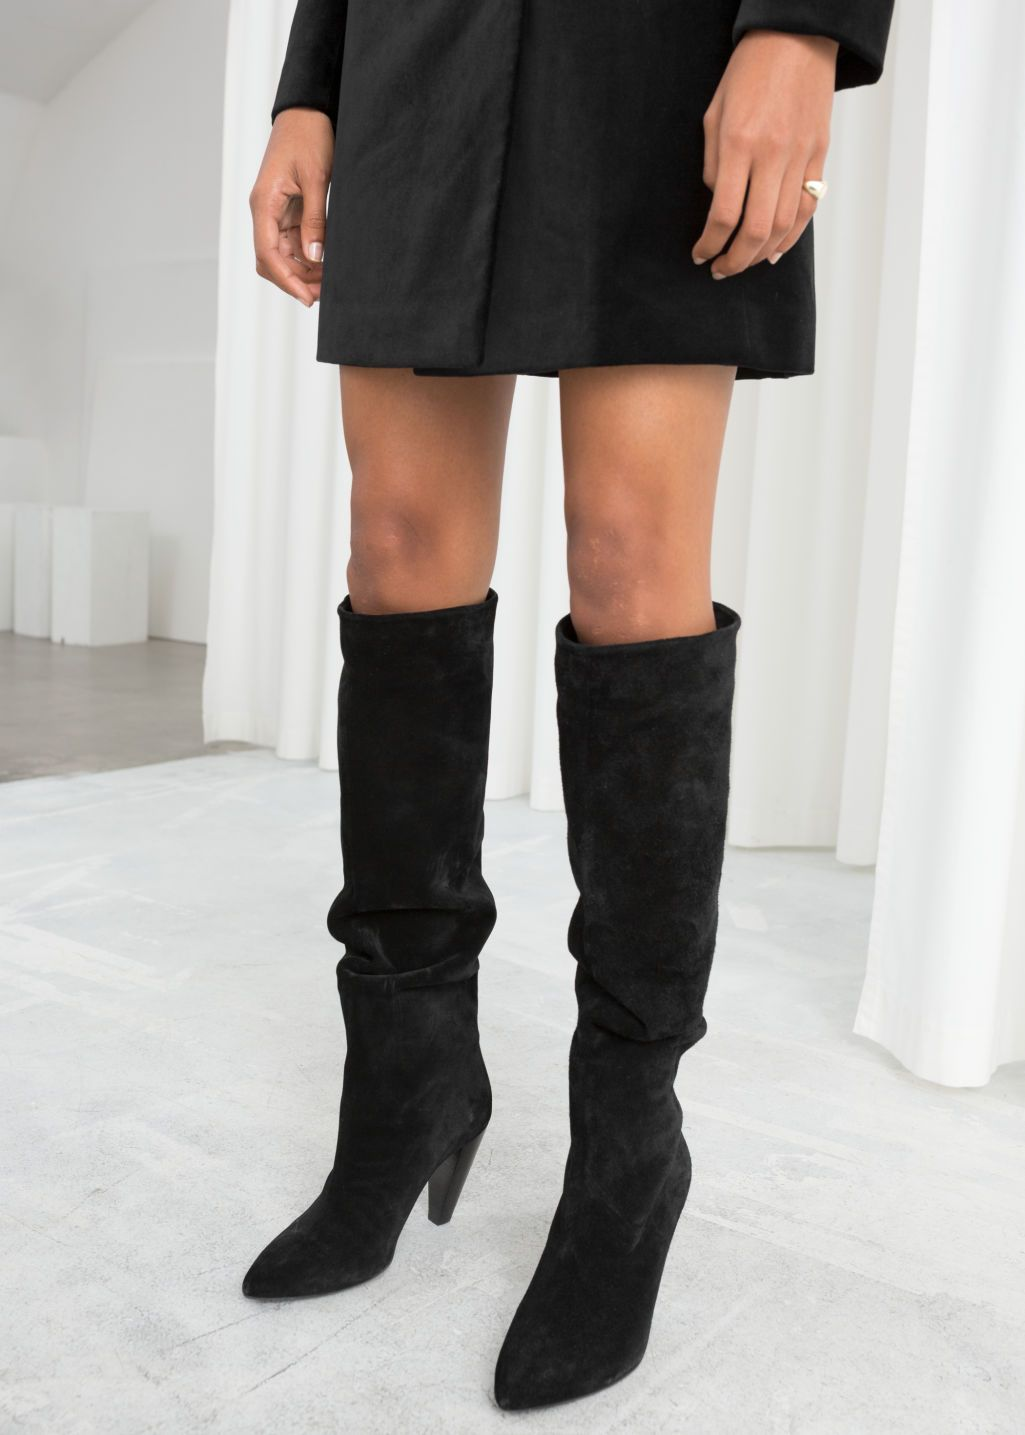 Knee High Suede Boots Black Other Stories High Knee Boots Outfit Suede Boots Knee High High Boots Outfit